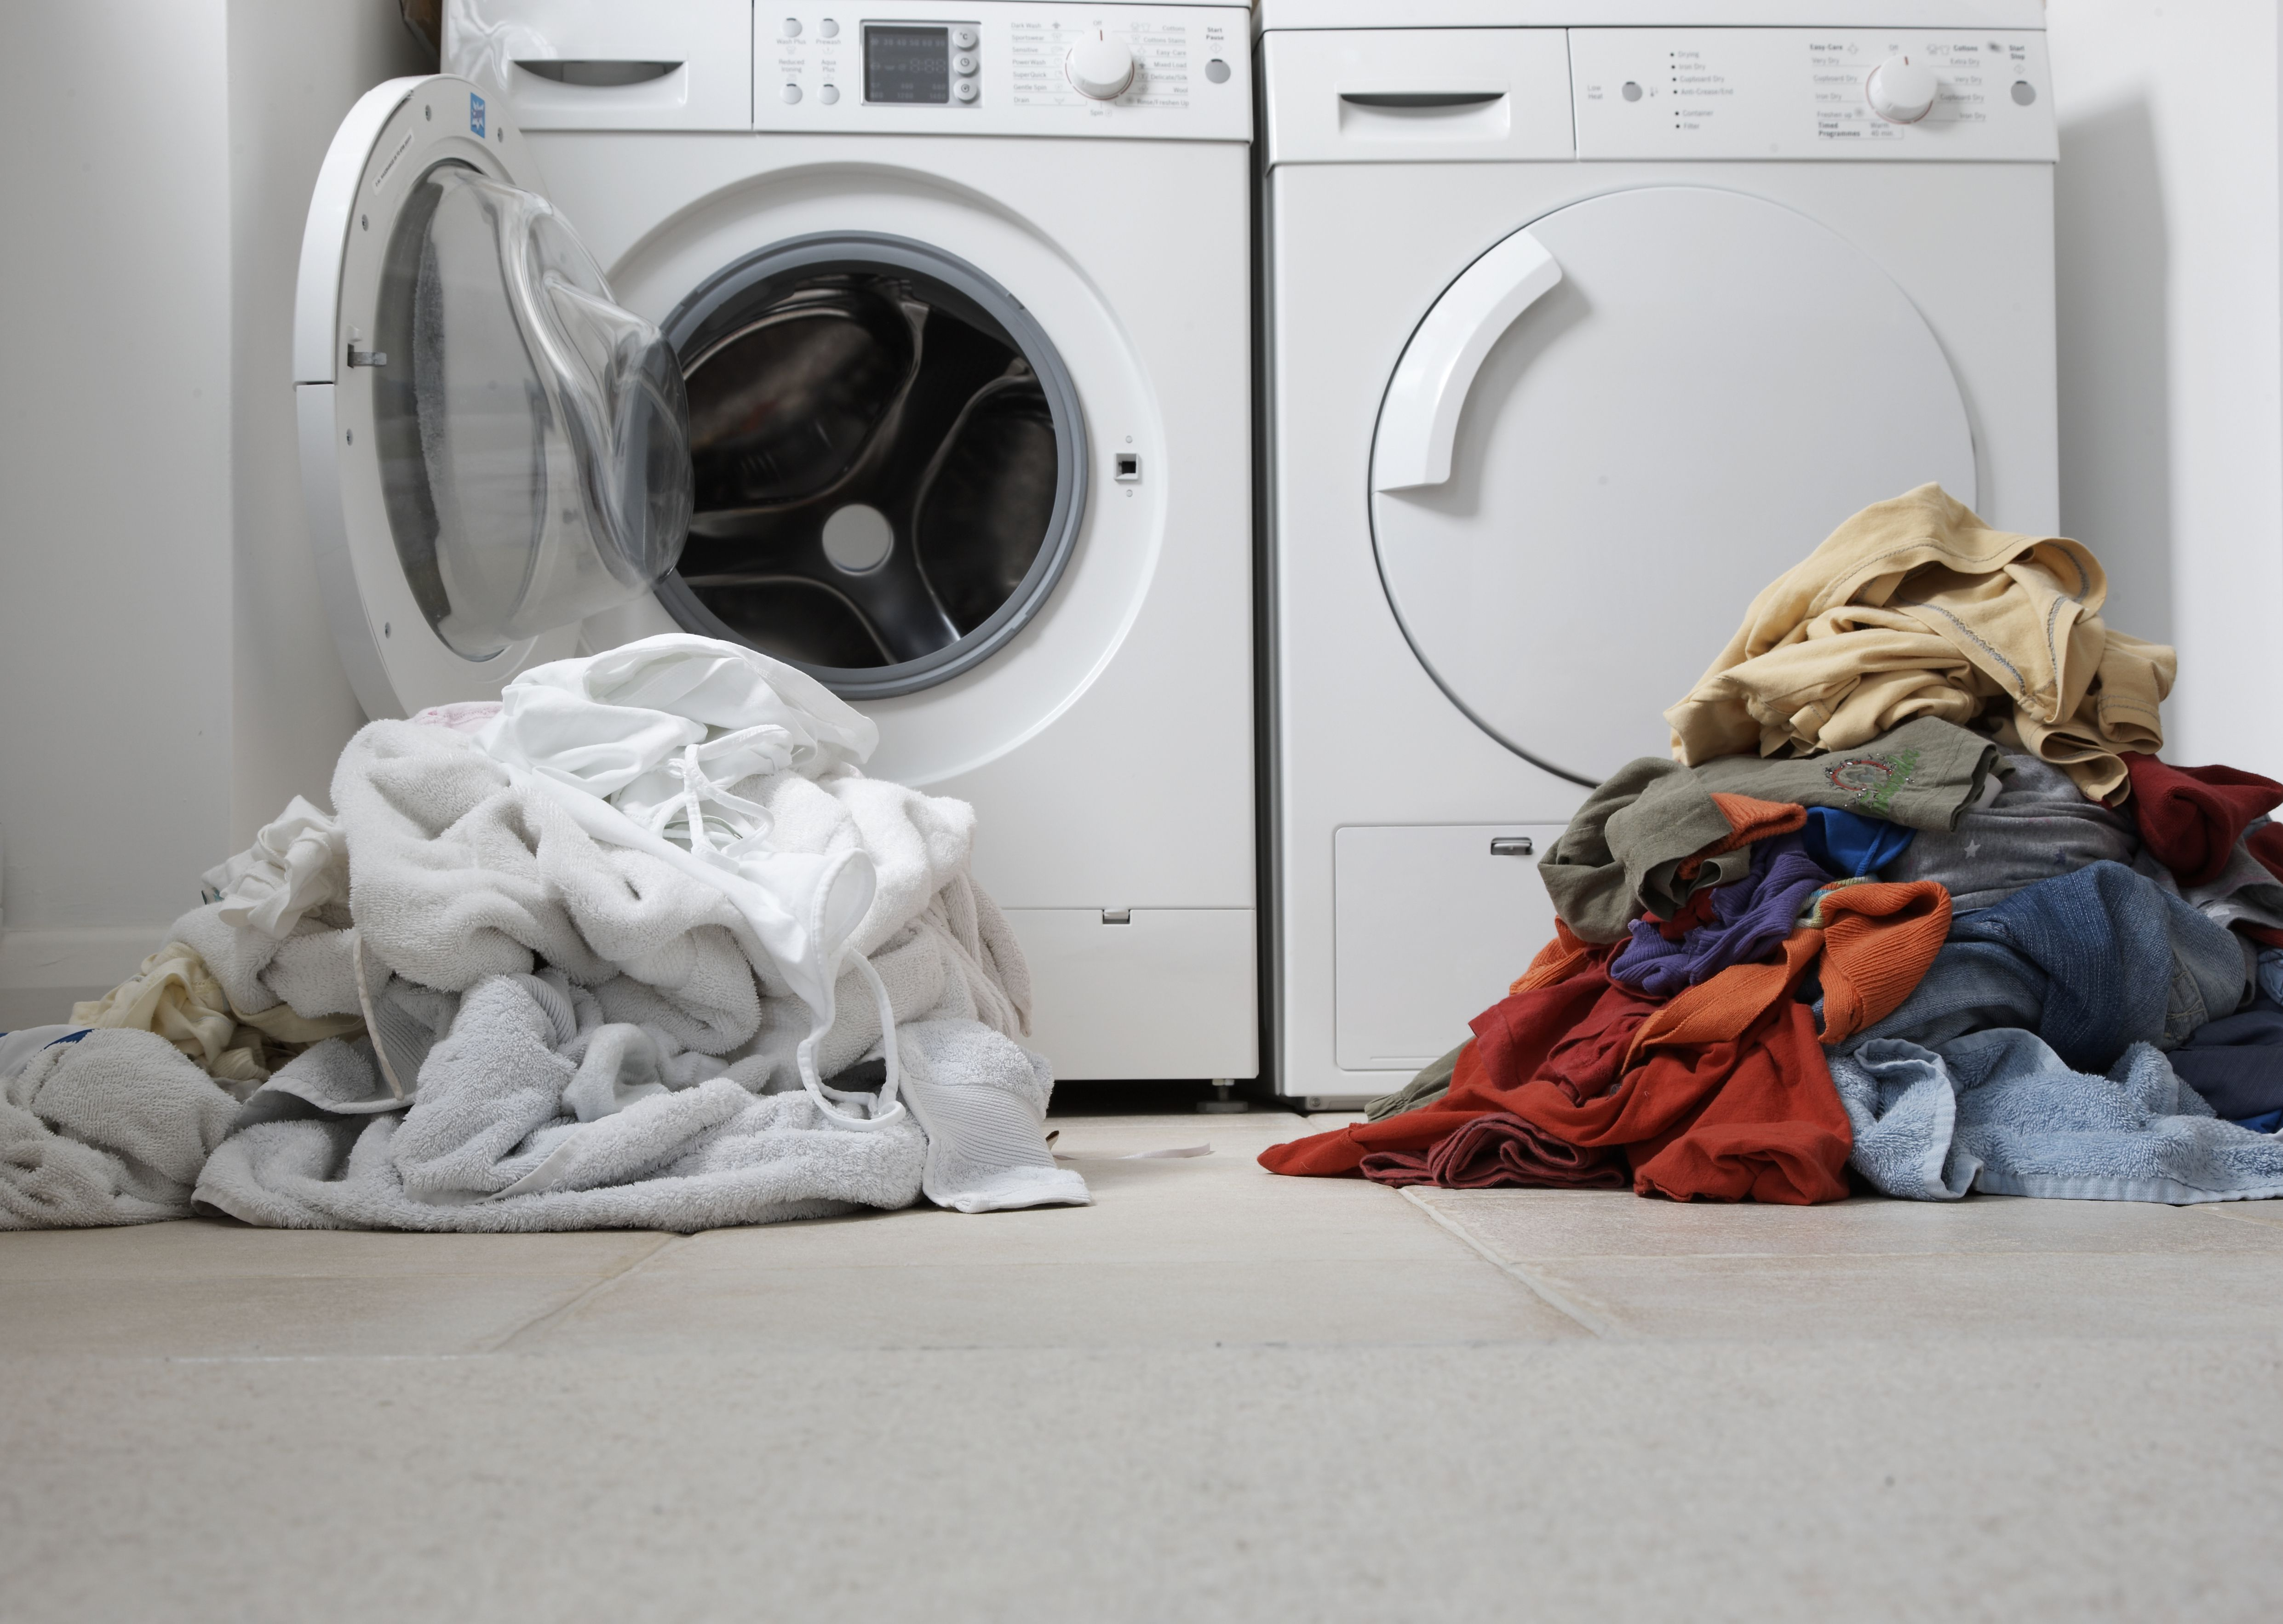 How To Sort Laundry Before Washing